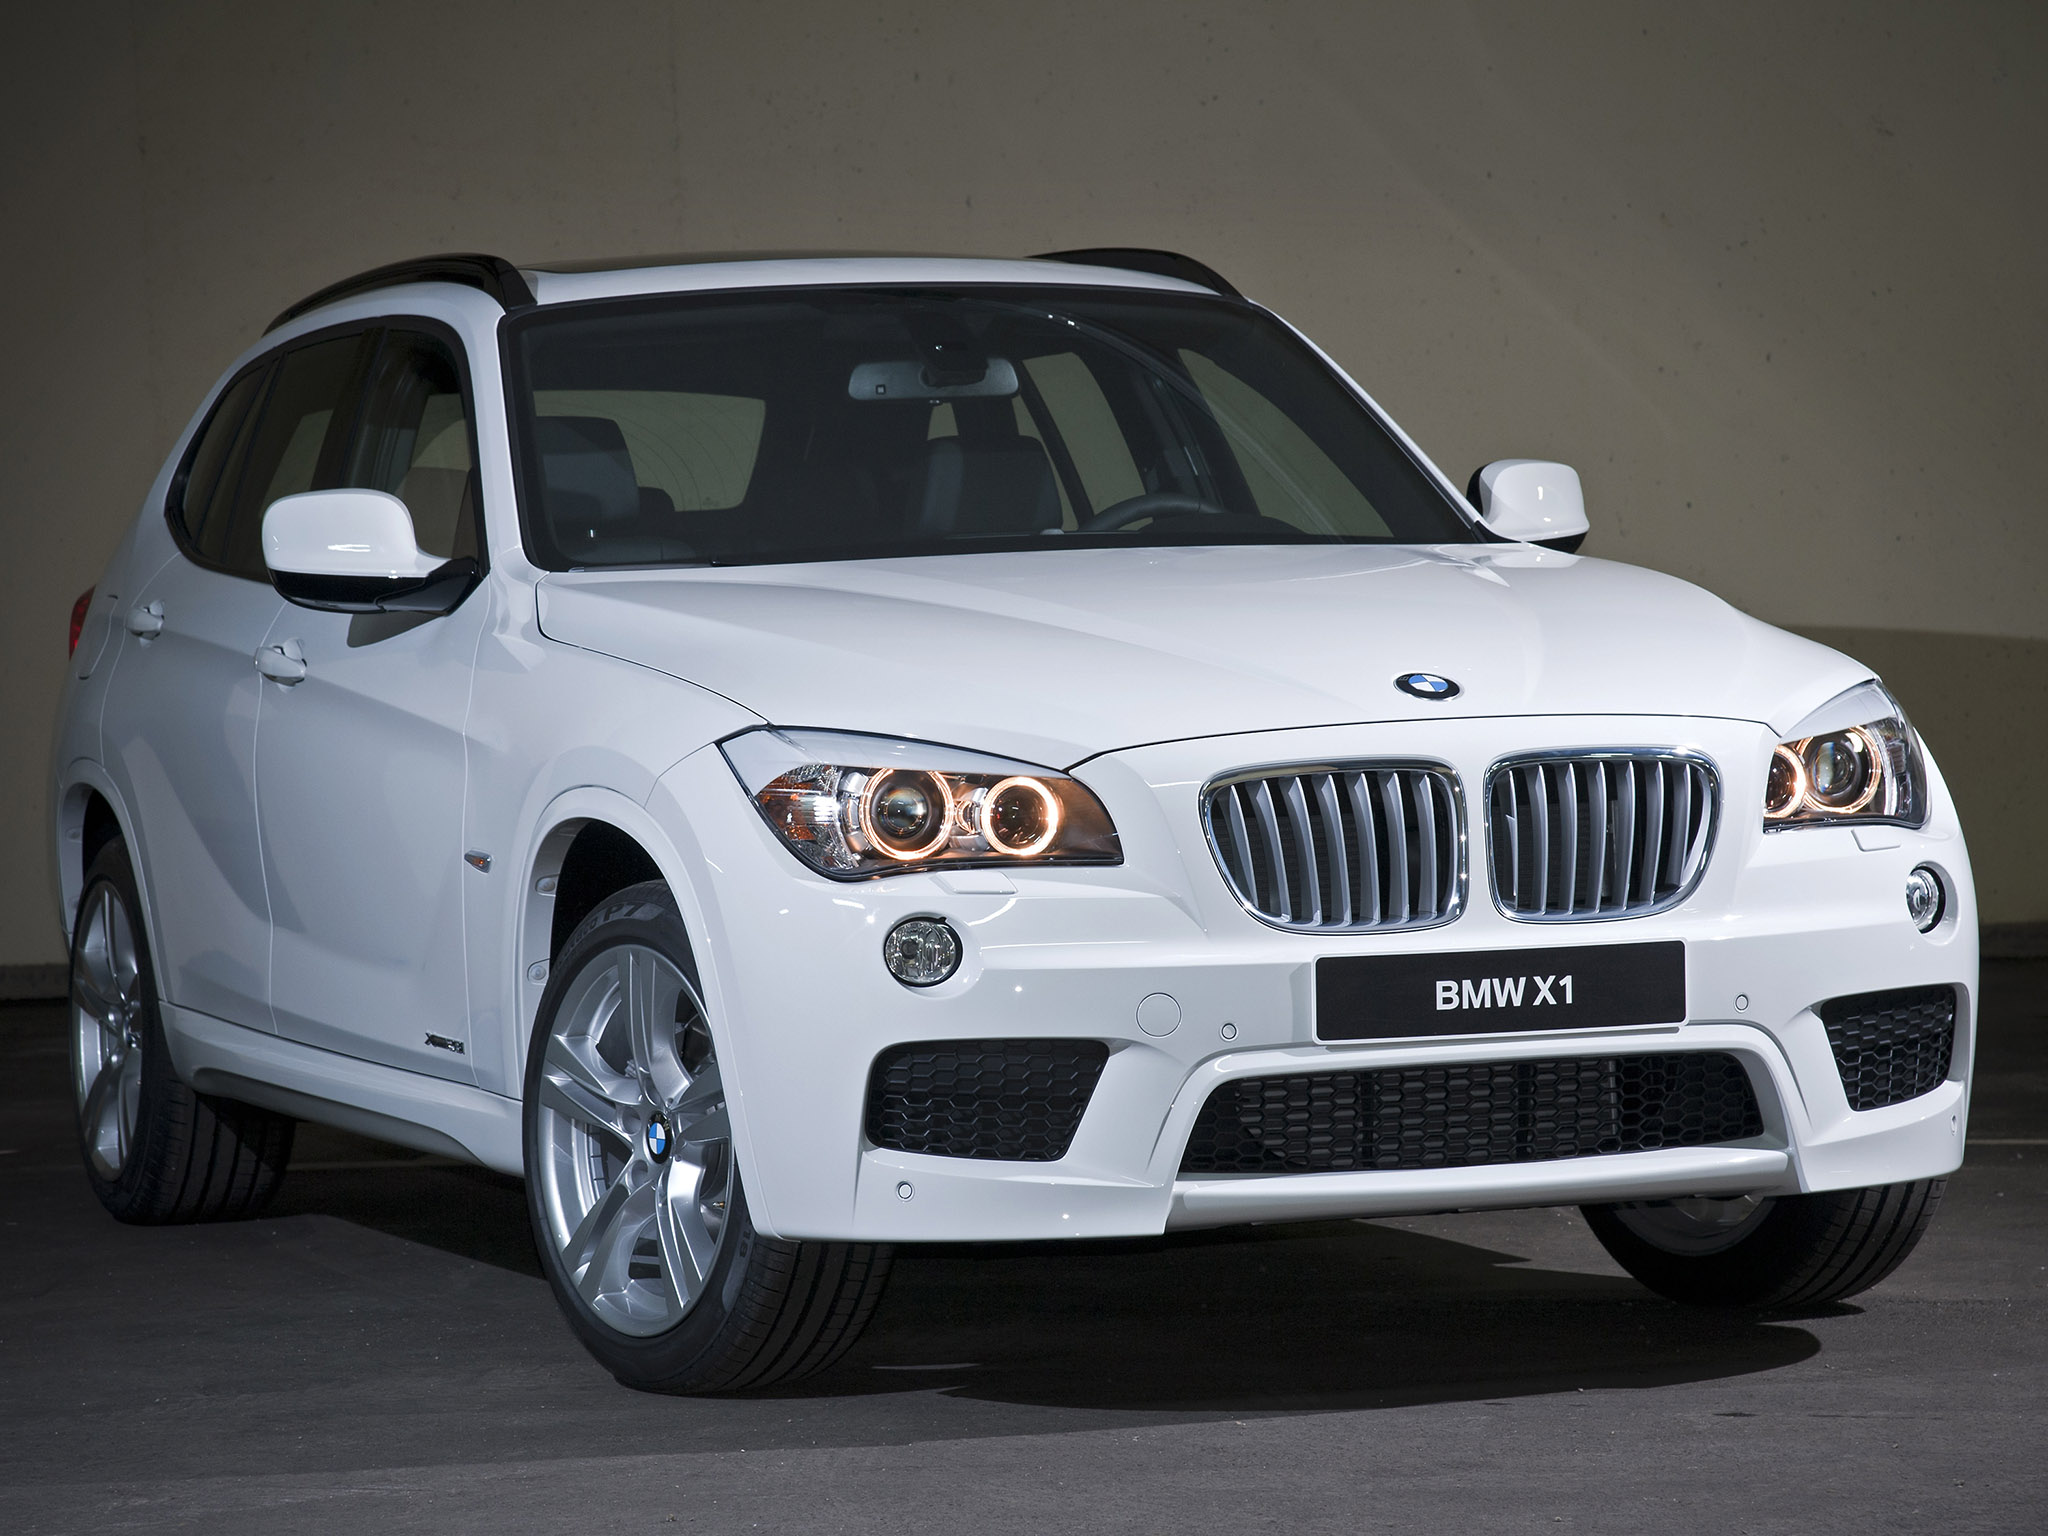 bmw x1 m package 2011 bmw x1 m package 2011 photo 05 car in pictures car photo gallery. Black Bedroom Furniture Sets. Home Design Ideas